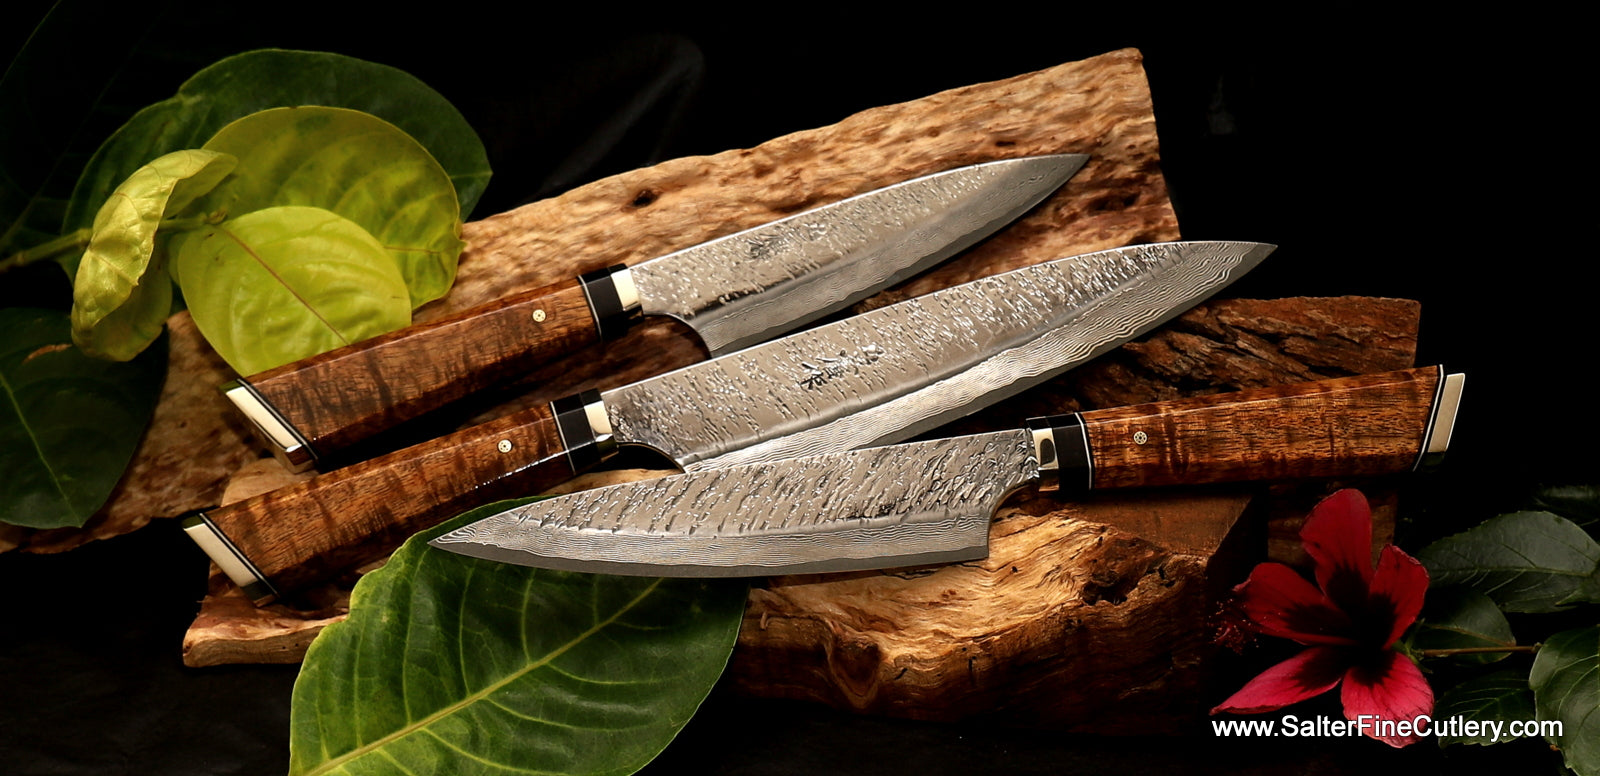 Custom exclusive design raptor collection chef knives for professional chefs or home cooking kitchens from Salter Fine Cutlery of Hawaii